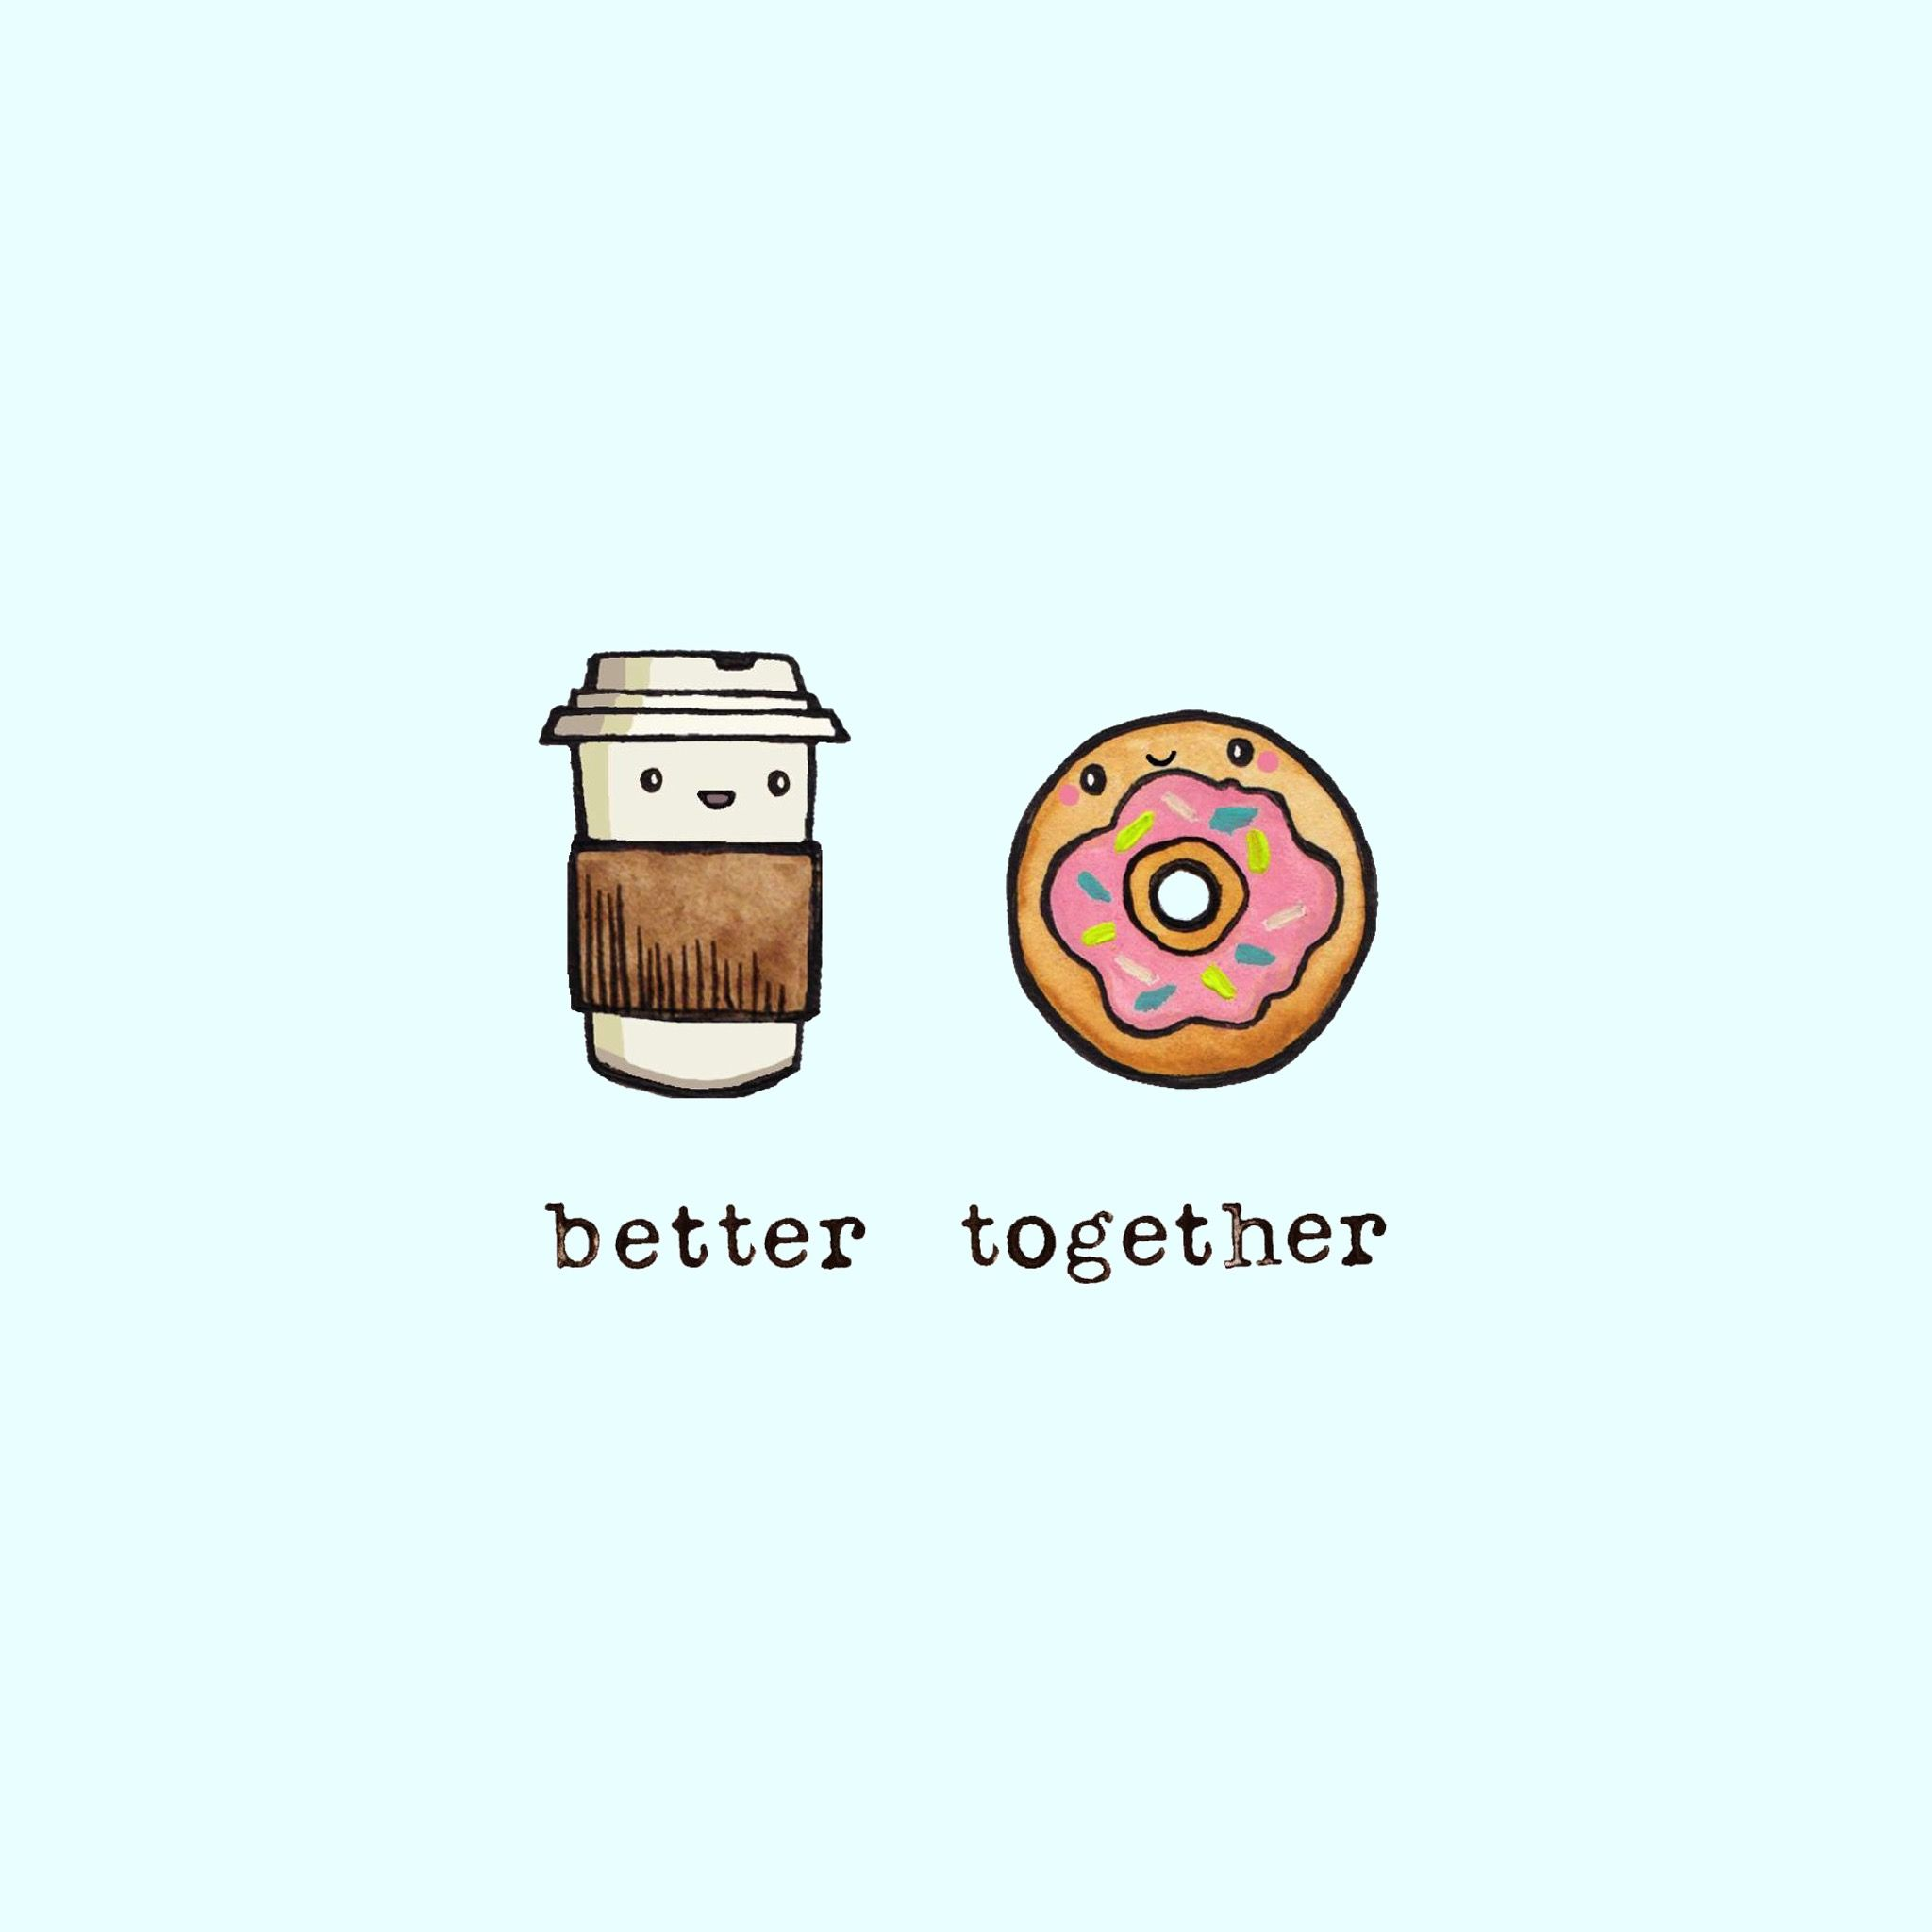 Better Together Wallpaper Cute Food Drawings Better Together